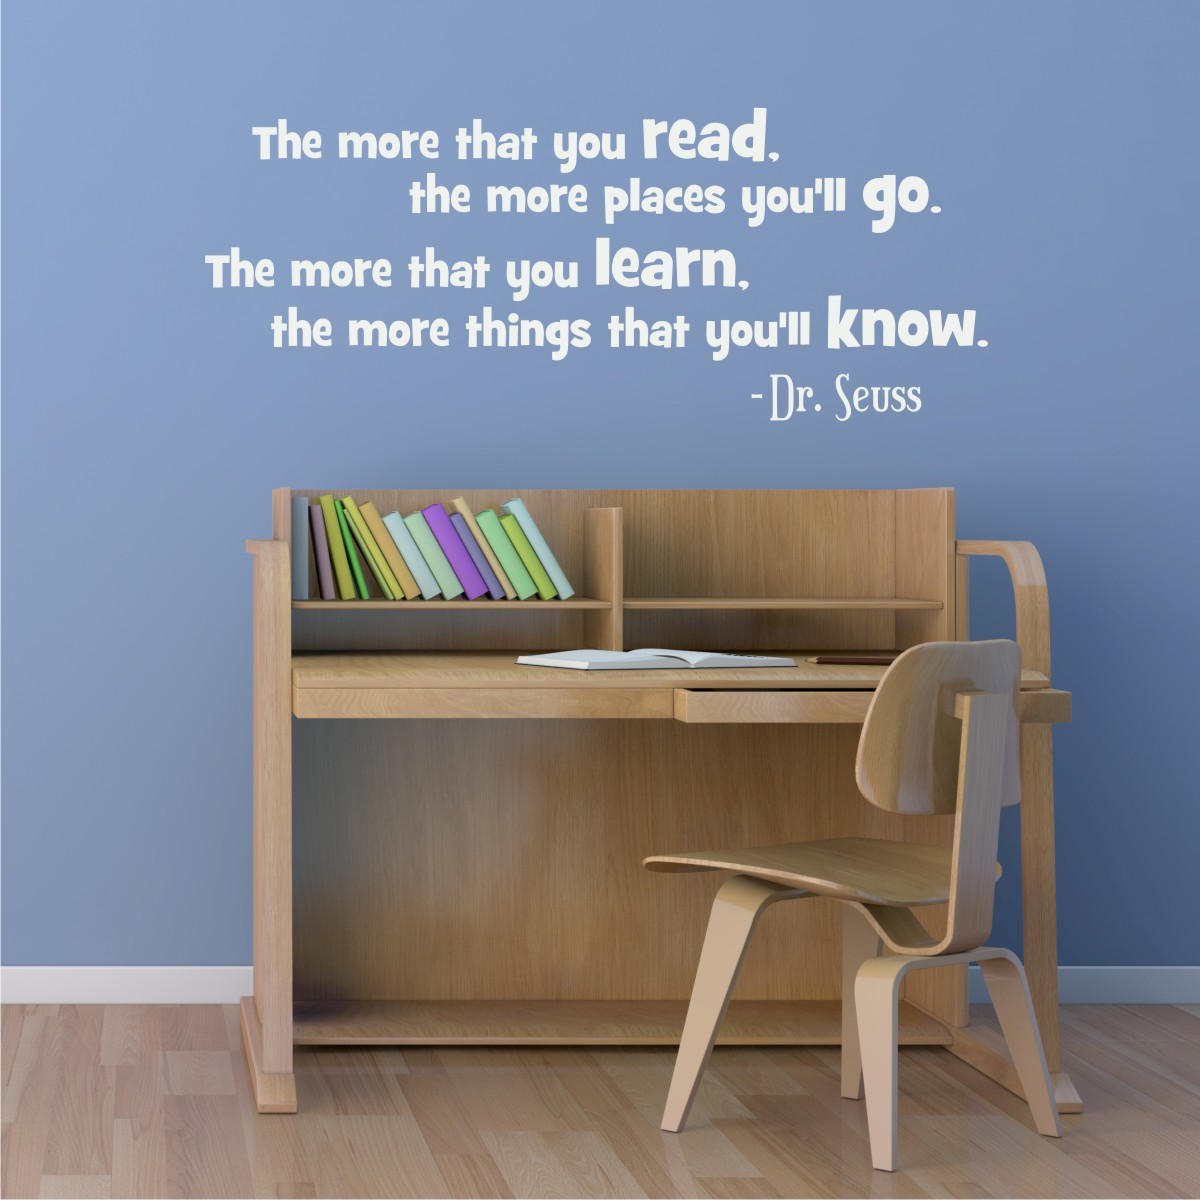 Read Dr Seuss Wall Quotes Decal Wallquotes Com